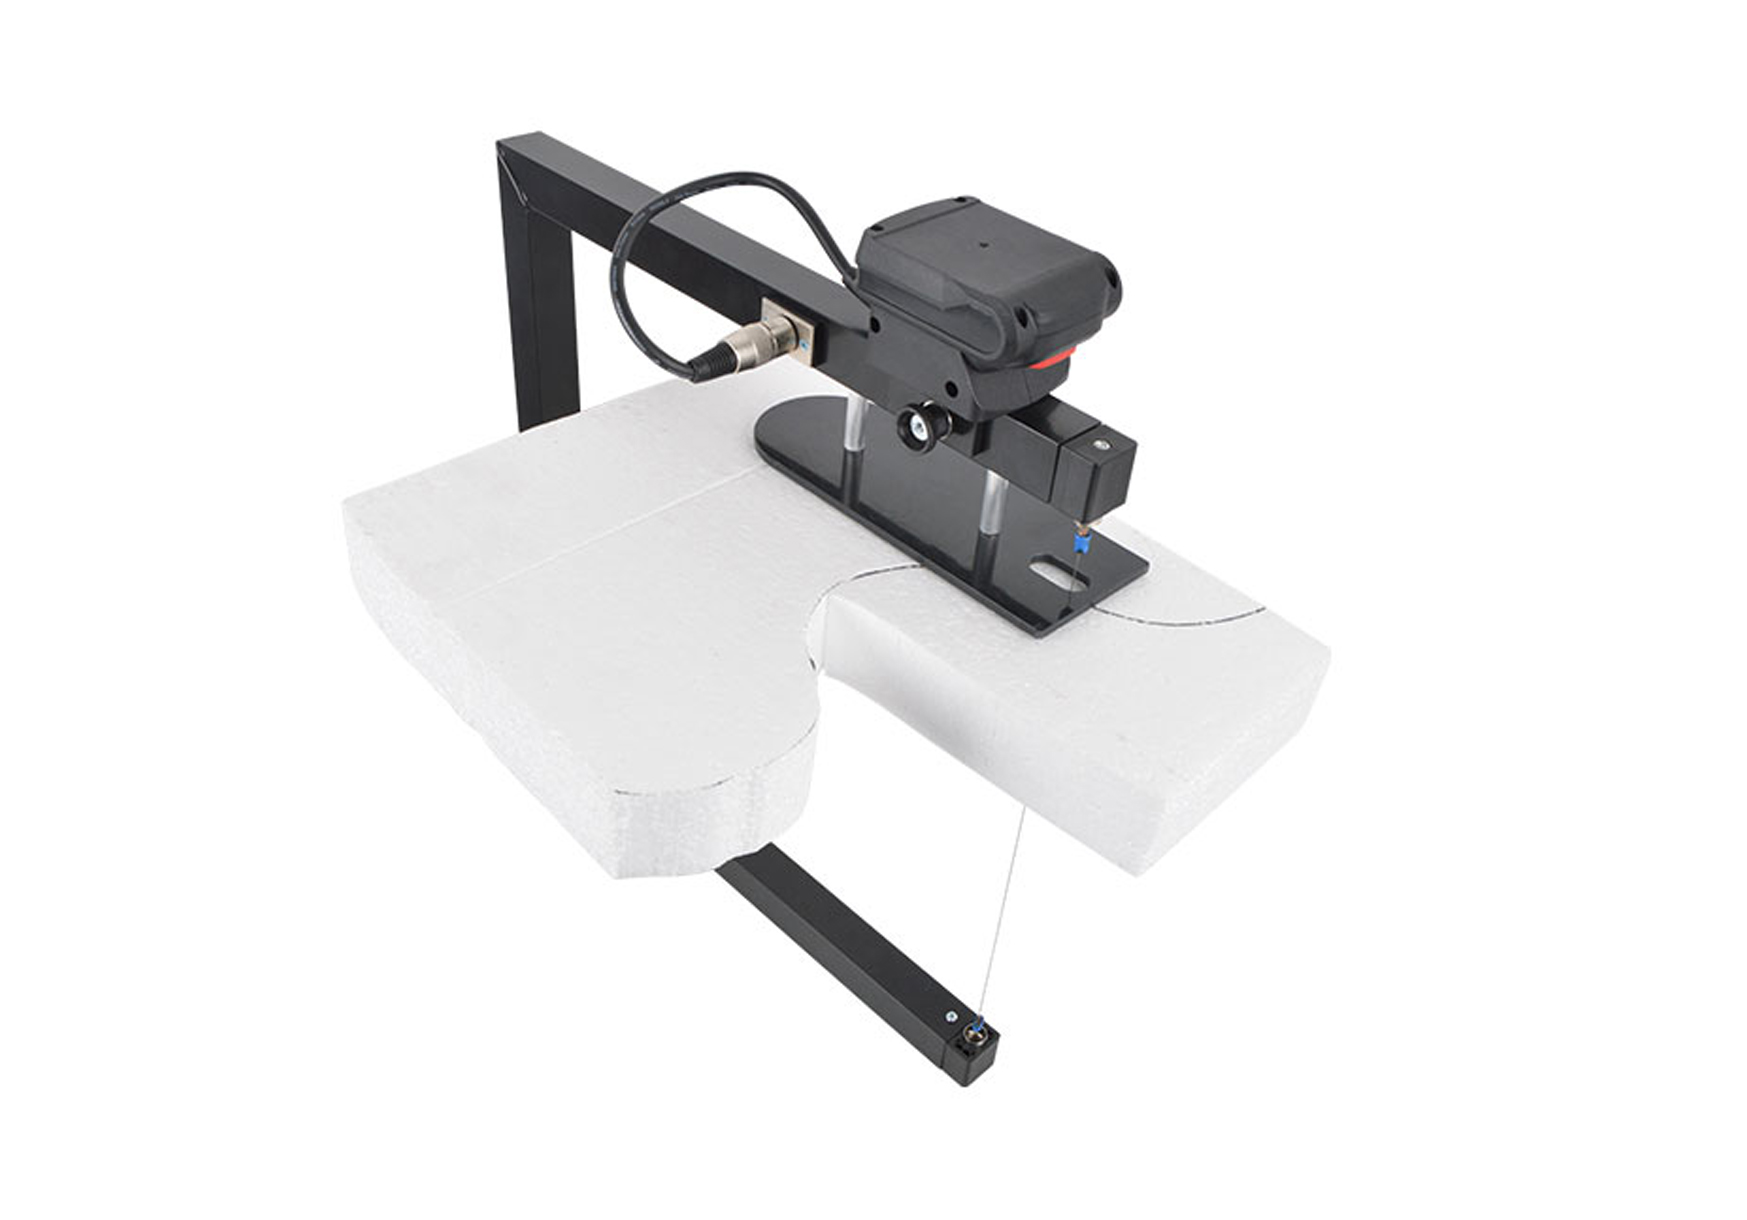 KD-115040 Cordless Hot Wire Bow EPS Foam Cutter Bow